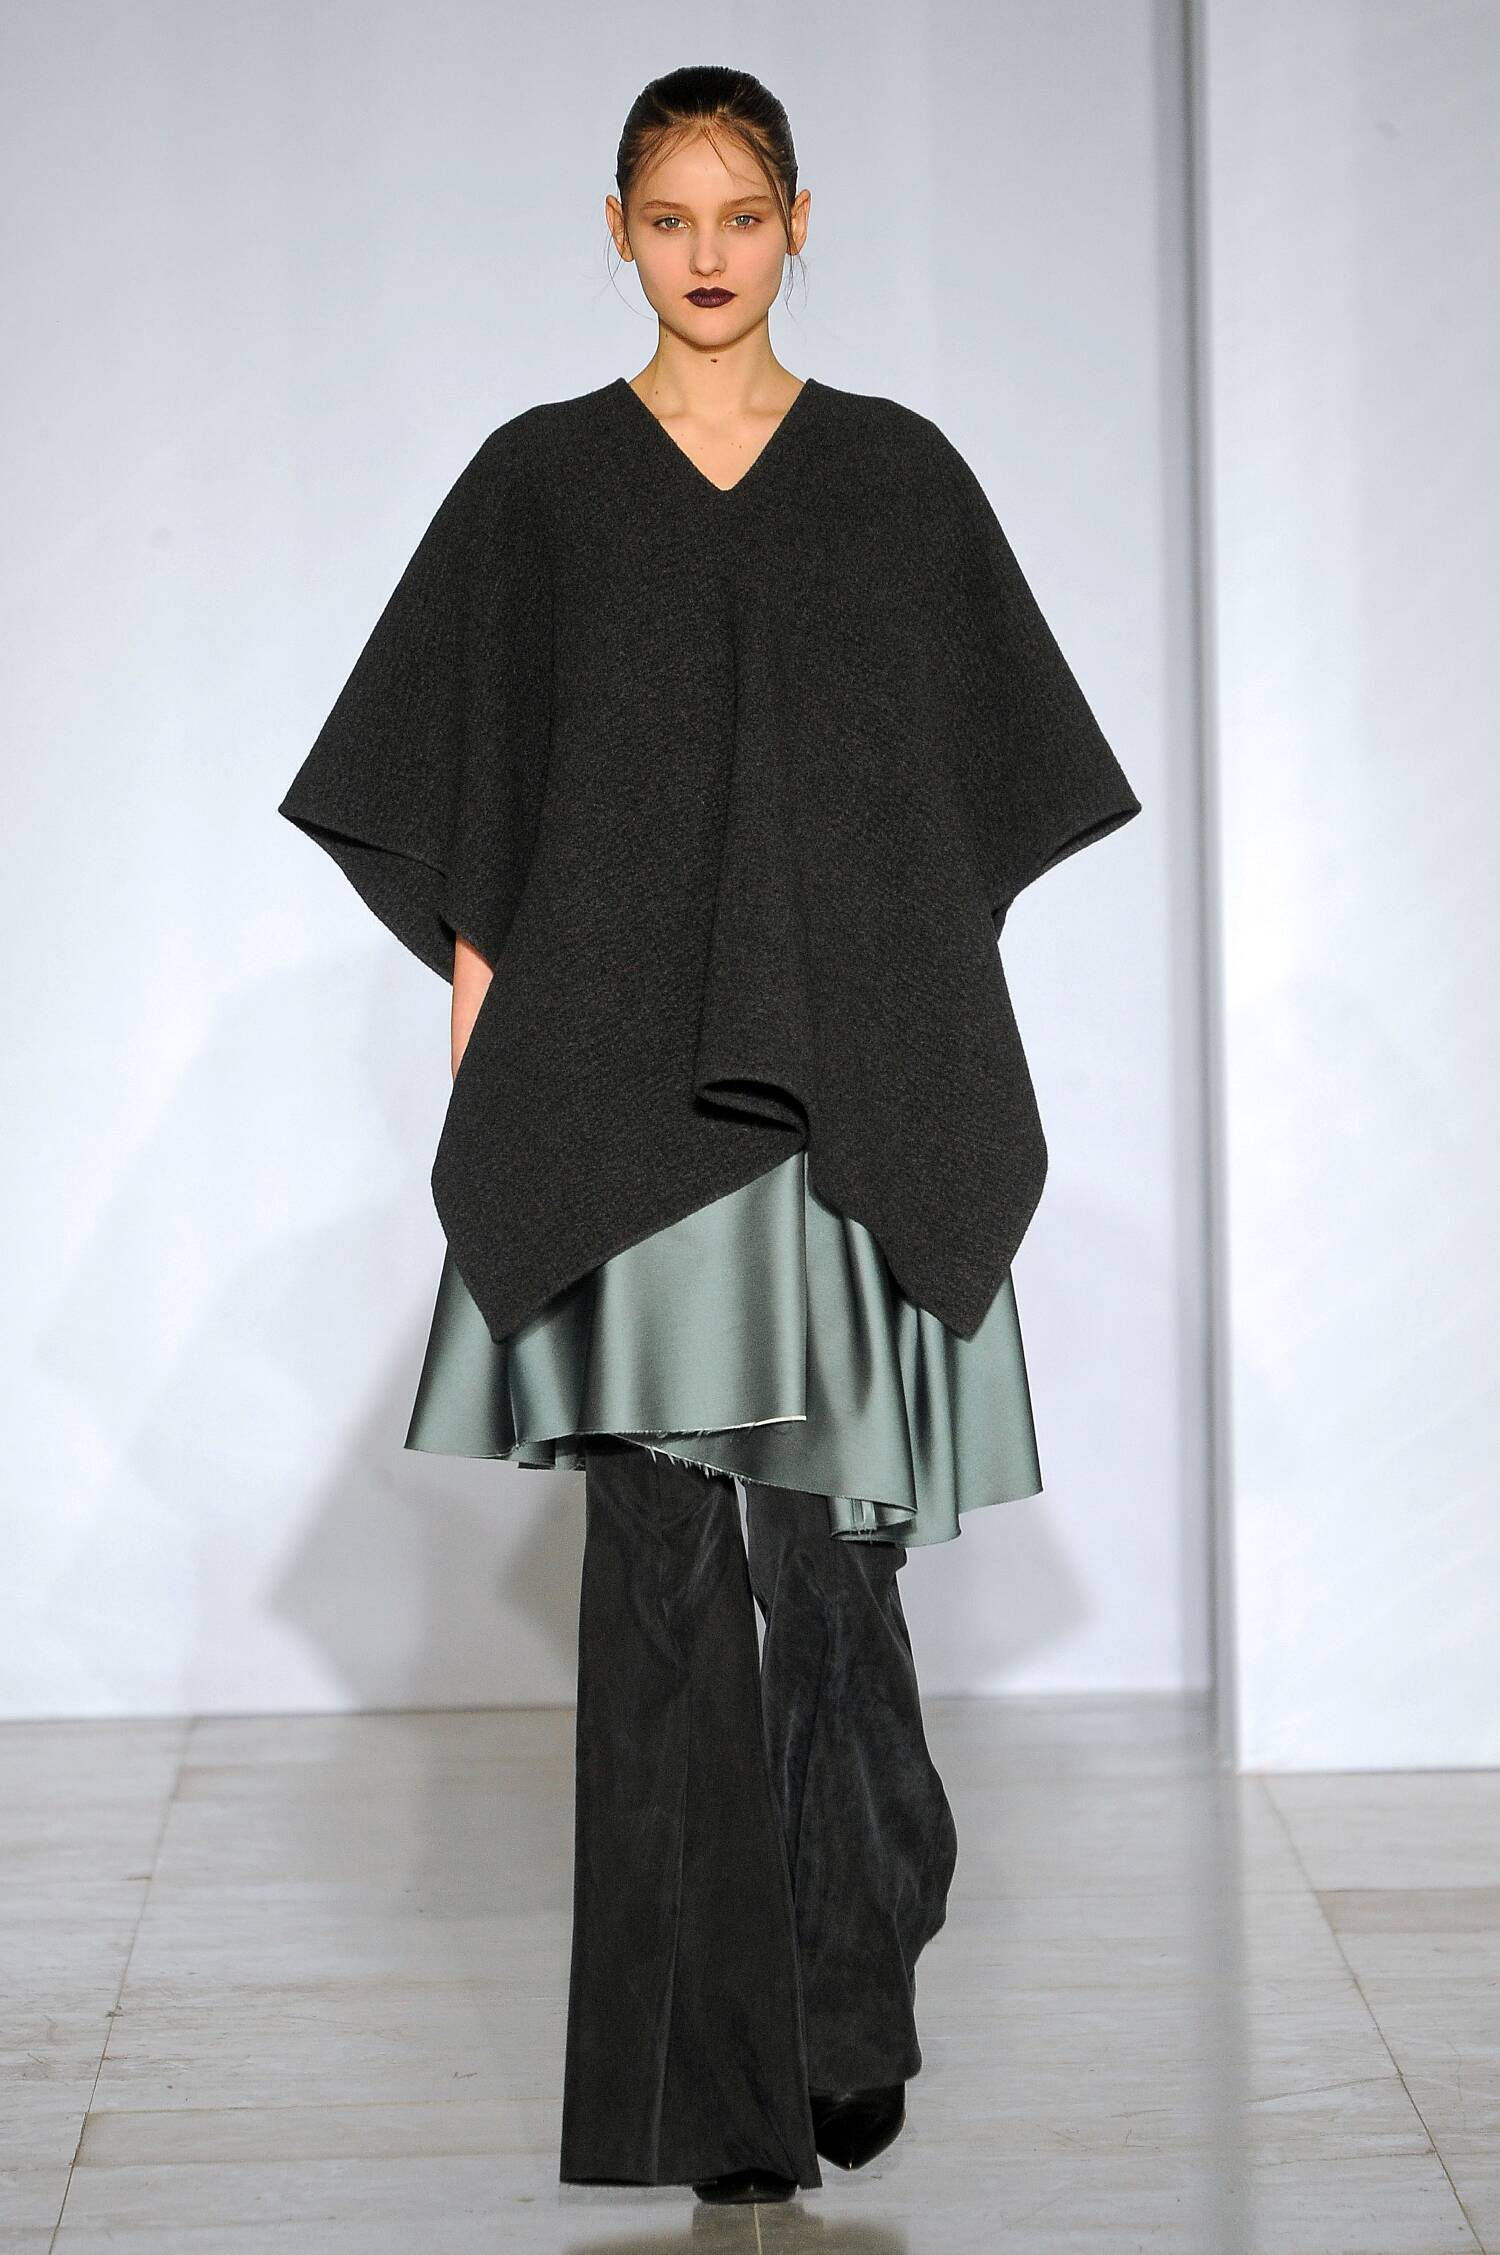 Yang Li Fall Winter 2015 16 Womenswear Collection Paris Fashion Week Fashion Show